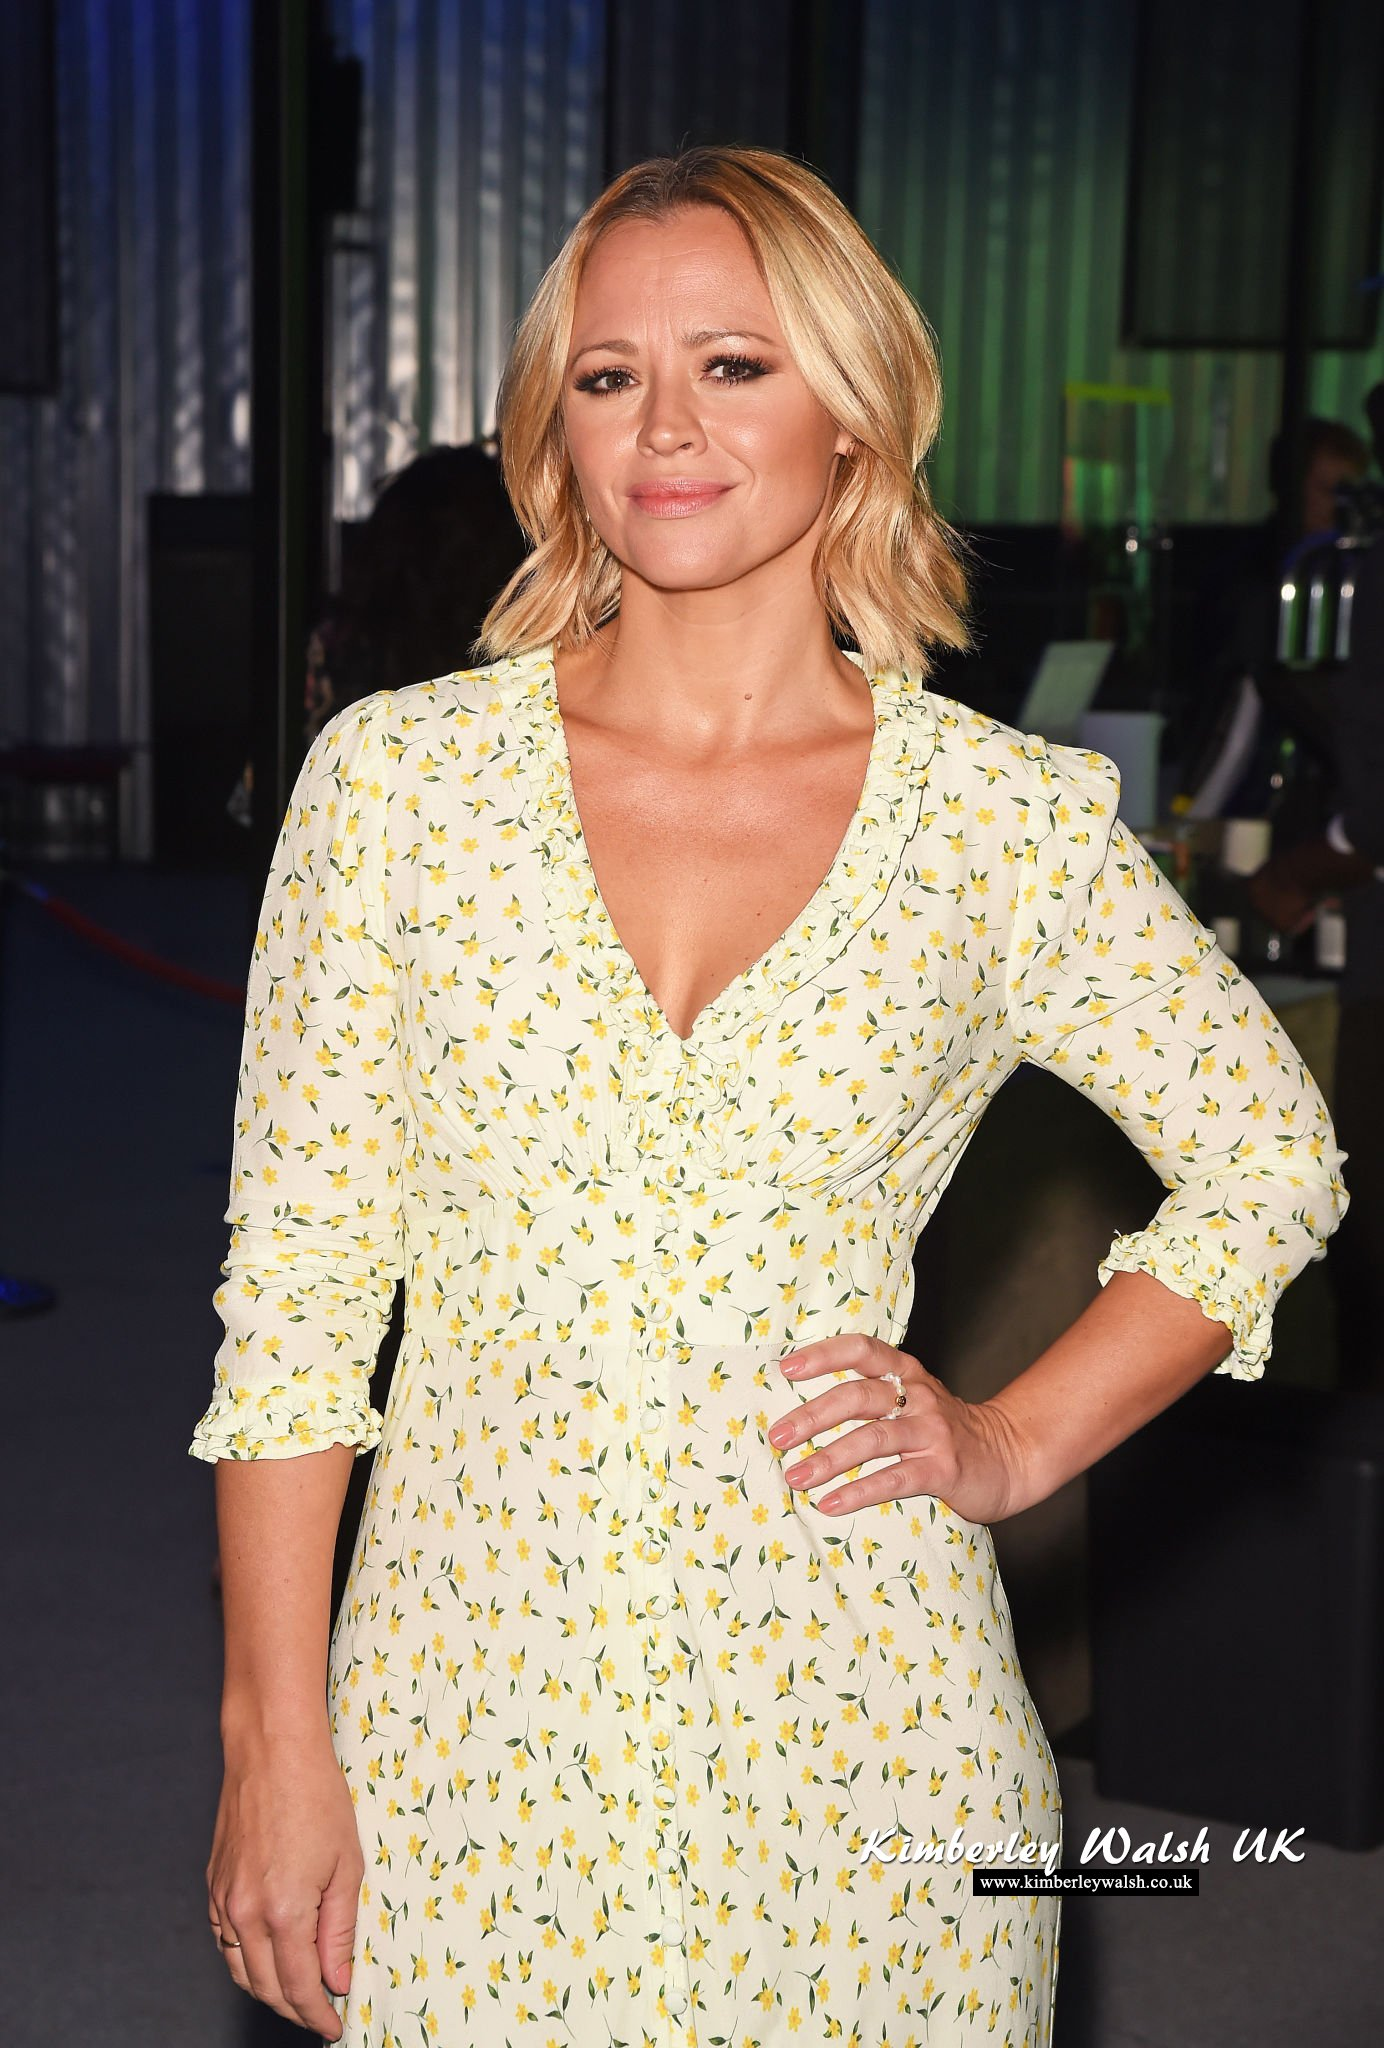 KimberleyWalsh_co_uk-009.jpg